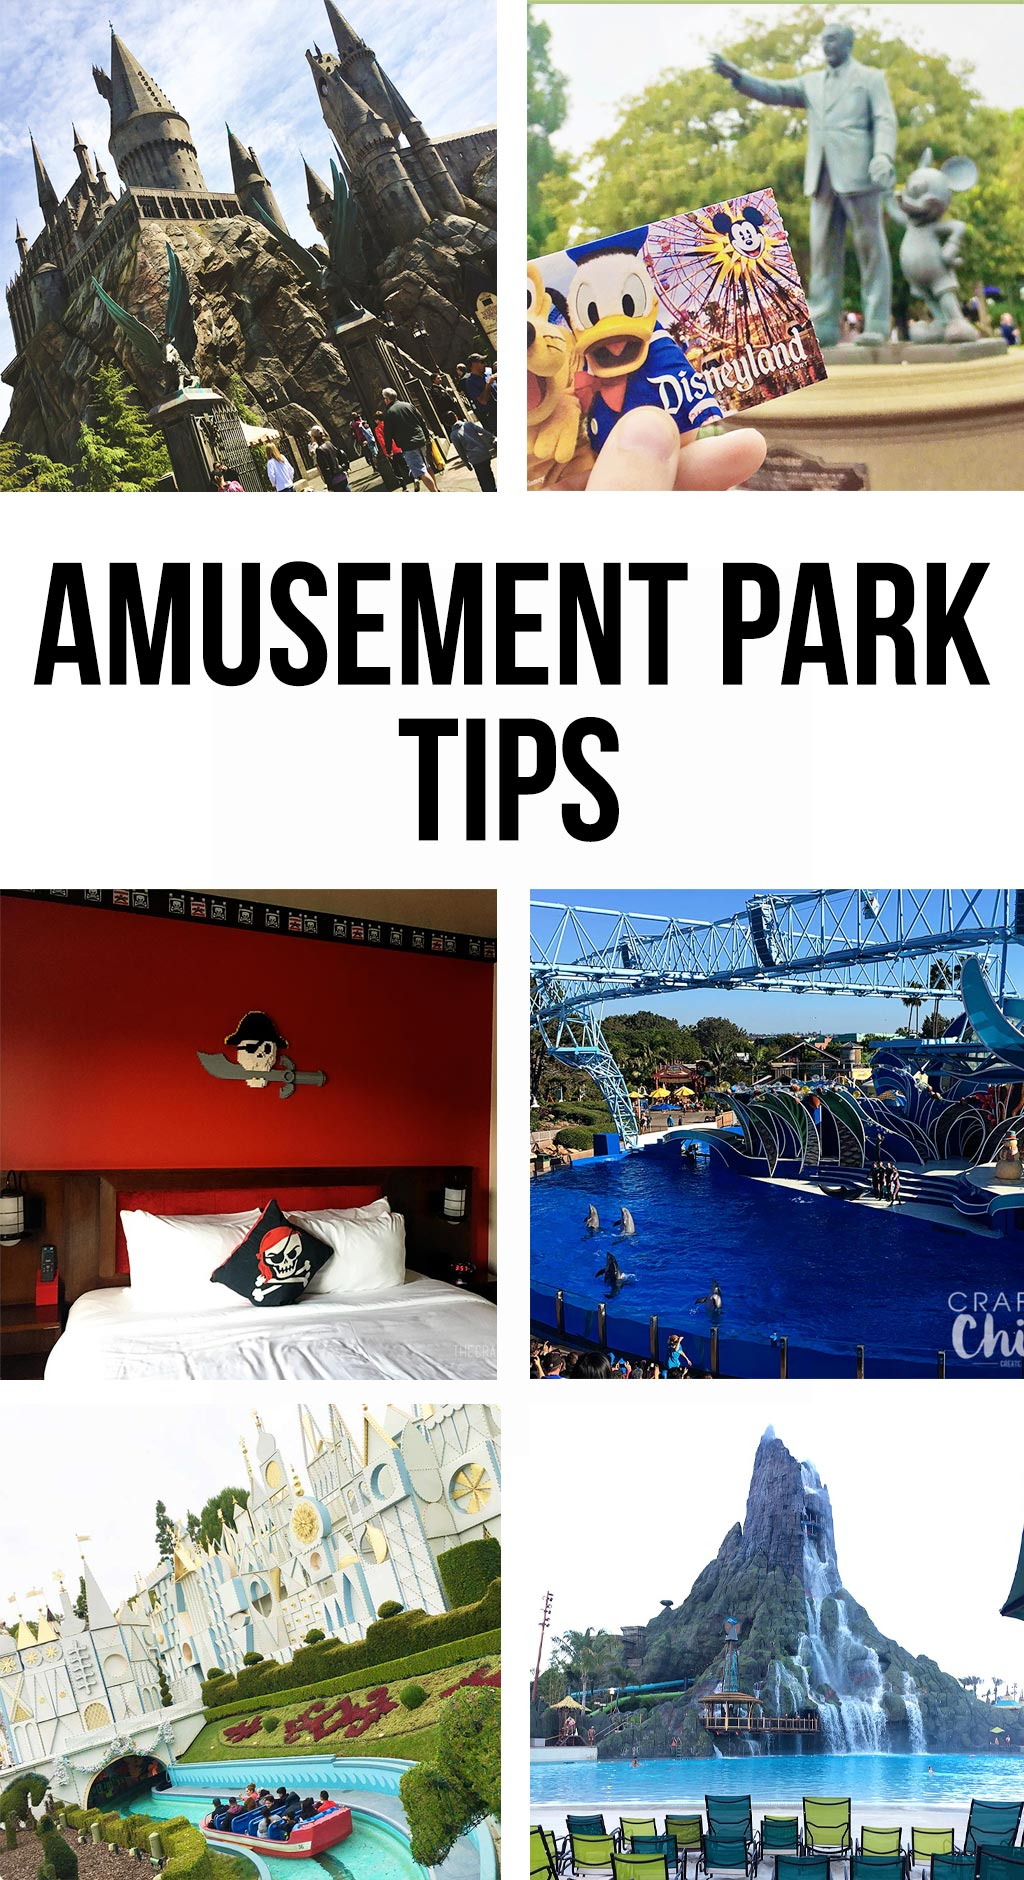 Amusement Park Tips | The best tips and tricks for your favorite amusement parks.  Disneyland, Disney World, Sea World, Universal Studios Hollywood and Orlando, and Legoland.  These are the best secrets! #amusementpark #tips #disneyland #seaworld #legoland #harrypotter #universalstudios